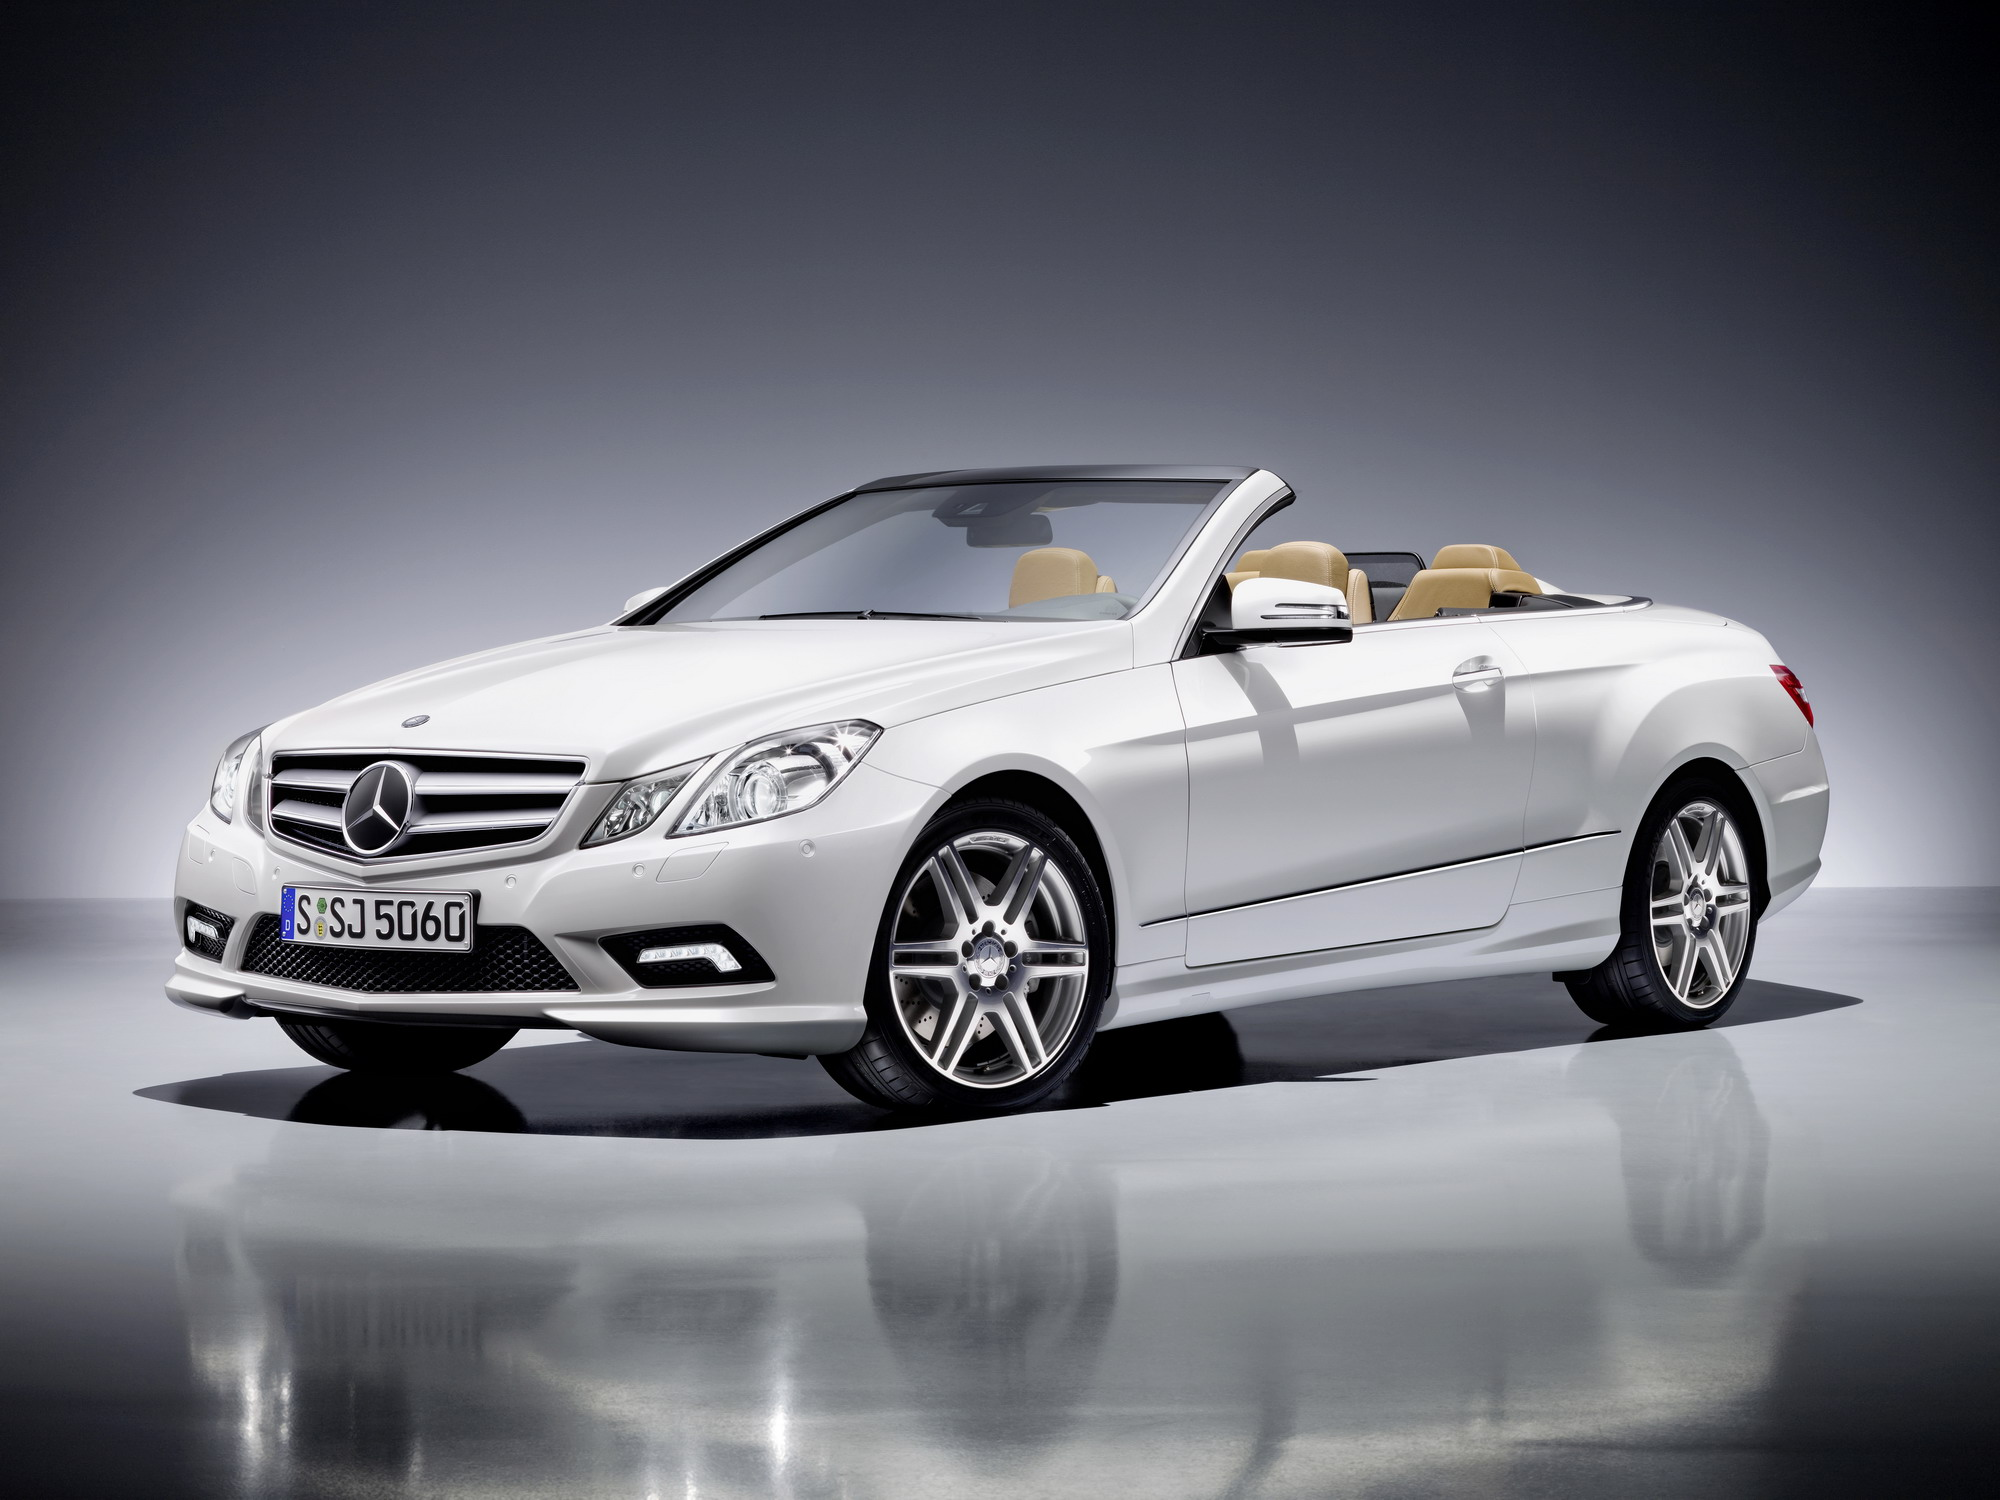 2011 mercedes e class cabrio with amg package review top. Black Bedroom Furniture Sets. Home Design Ideas